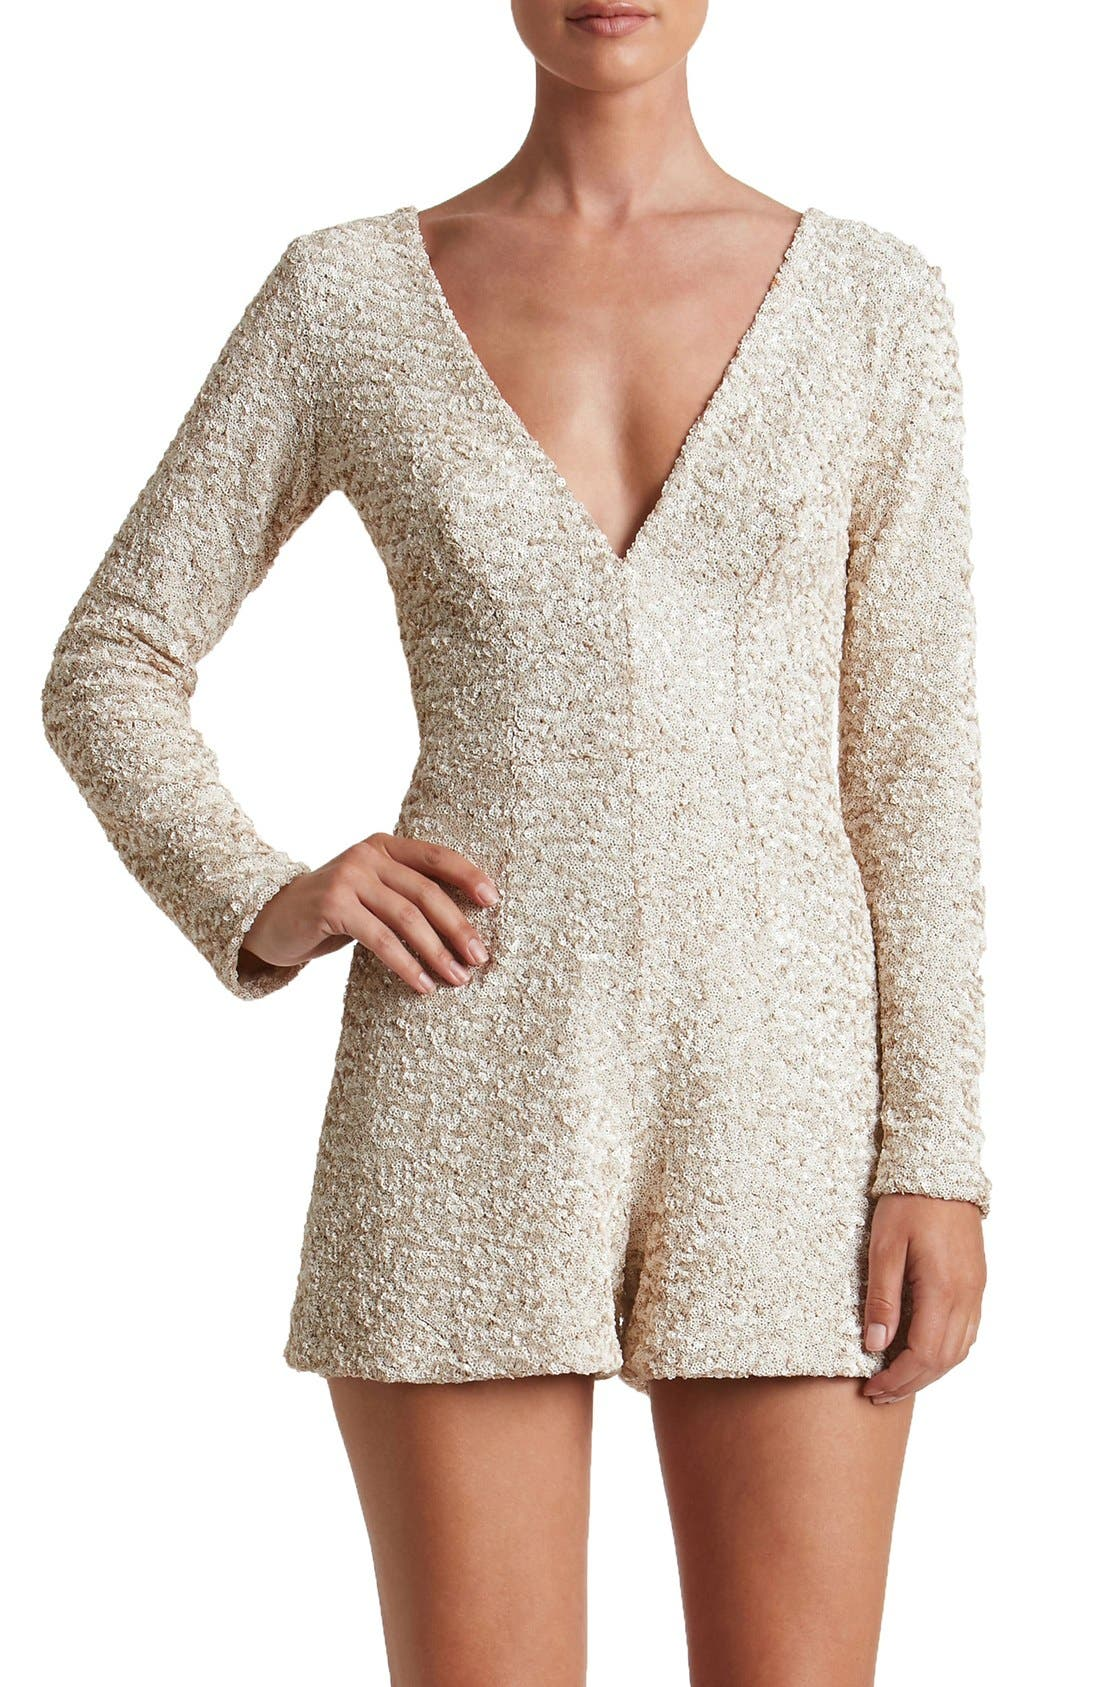 Alternate Image 1 Selected - Dress the Population Bianca Sequin Romper